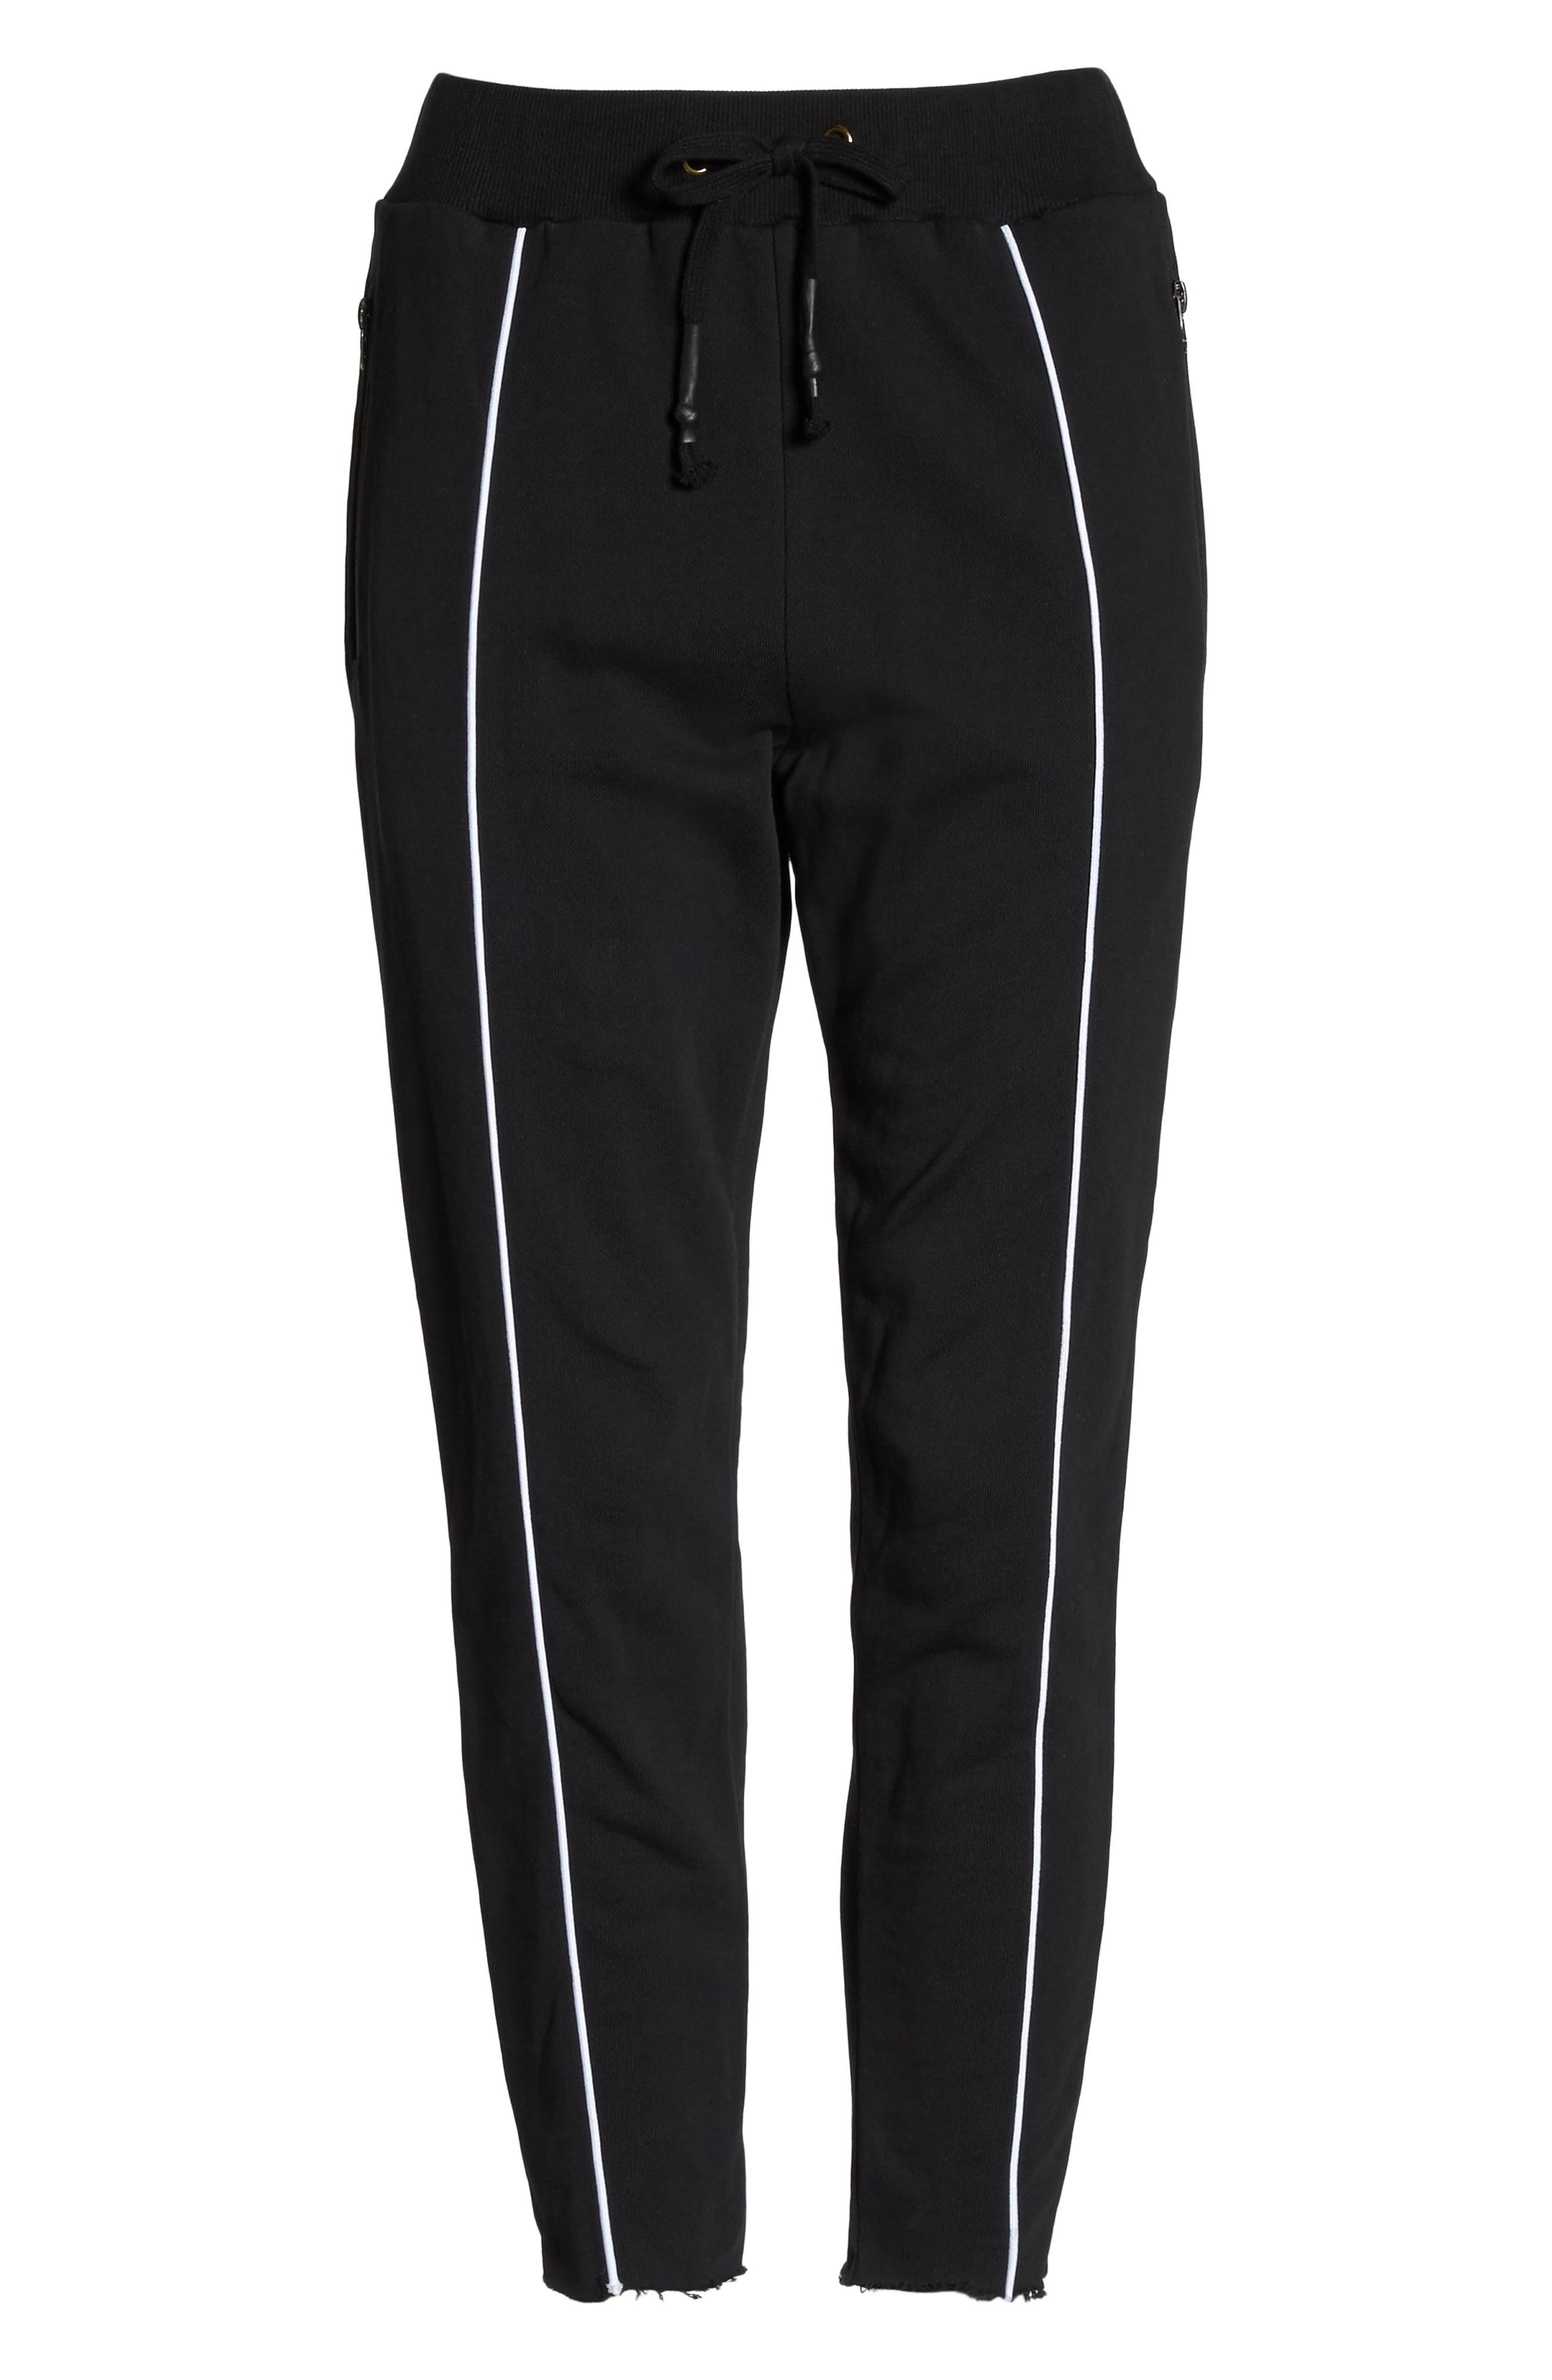 Deuce Track Pants,                             Alternate thumbnail 6, color,                             Black